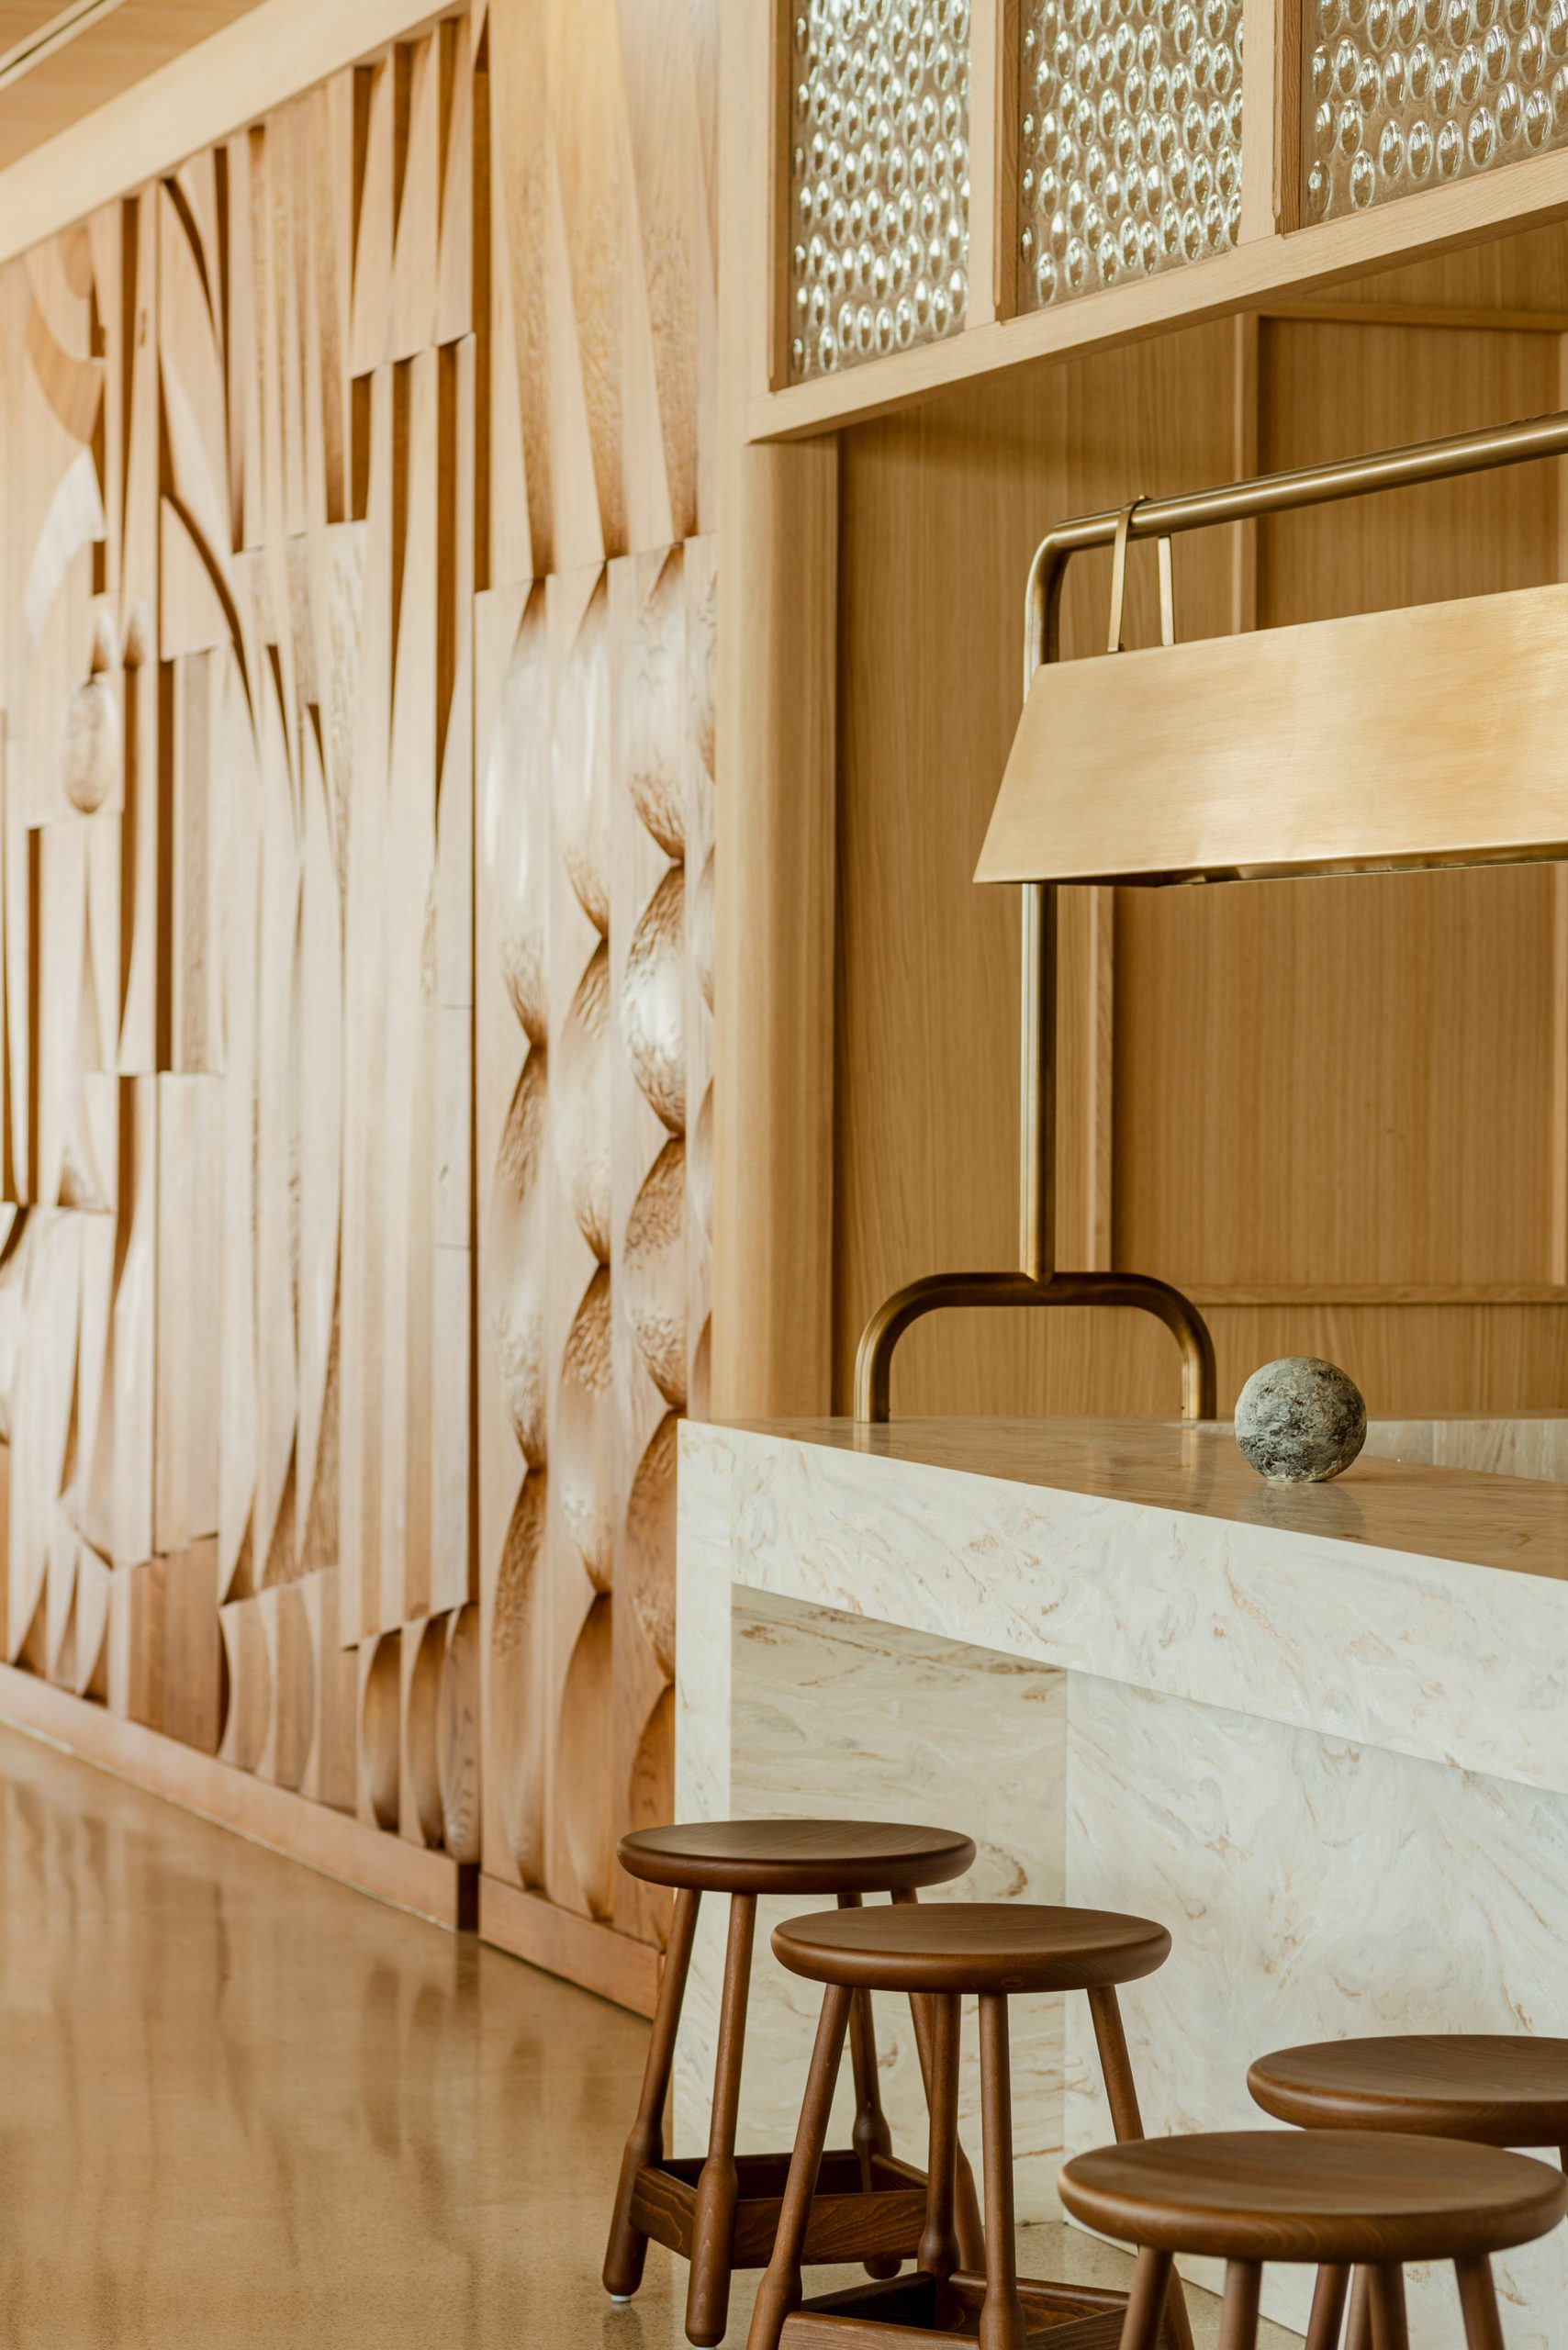 Wooden bas-relief wall and counter seating in Puro Hotel Stare Miasto